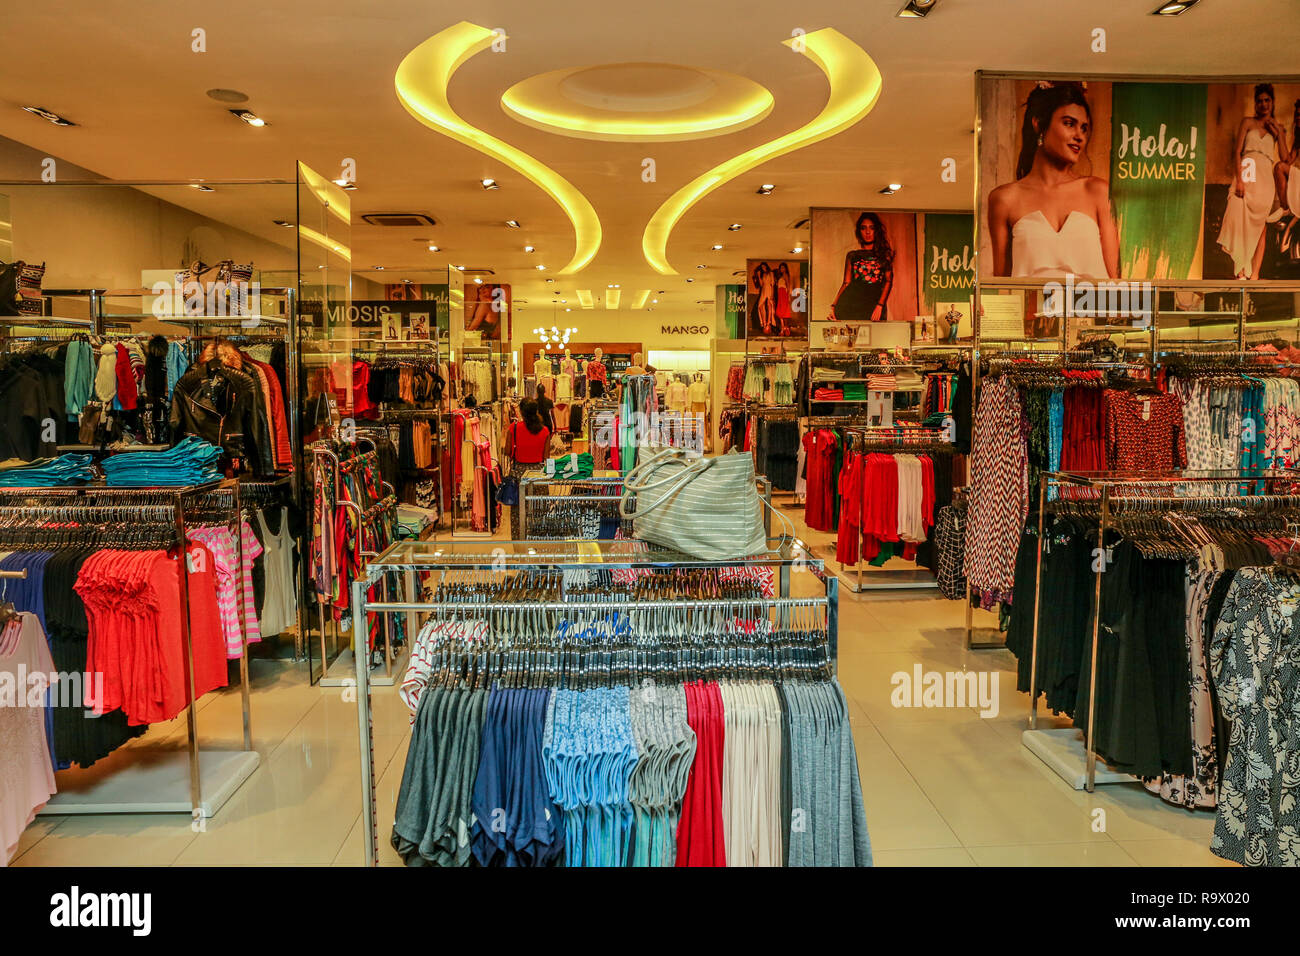 COLOMBO, SRI LANKA - SEPTEMBER 05, 2016:  Wide View of Ladies wear Clothes, Dresses, Skirts, Frocks, Trousers, Jackets, with Shelves, Racks and Hanger - Stock Image